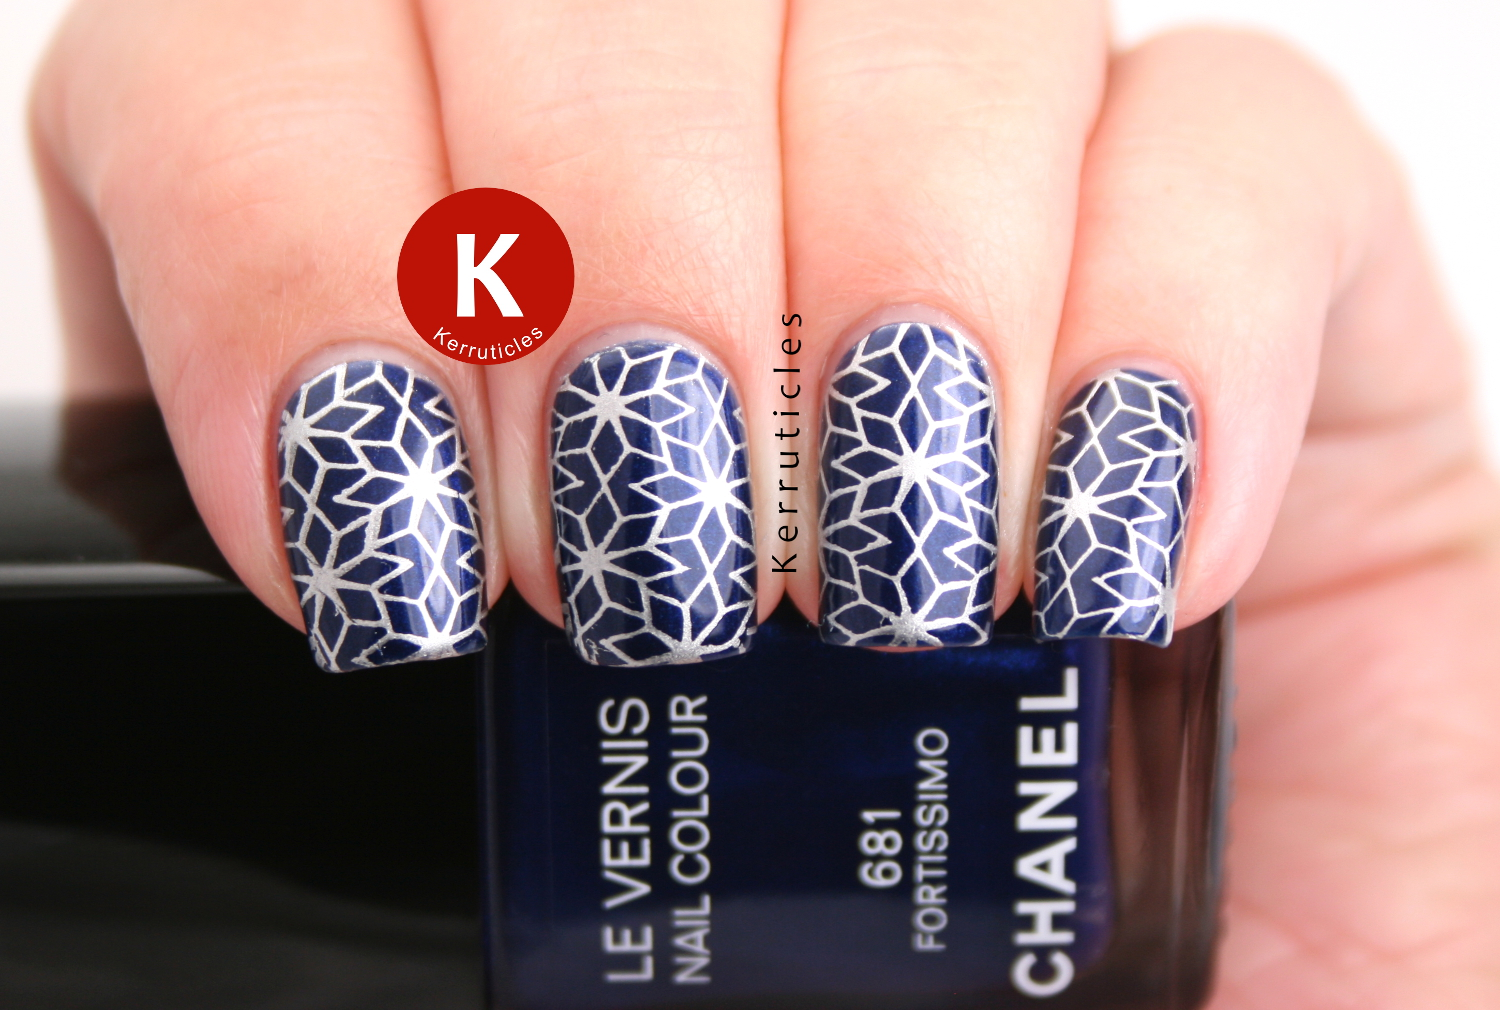 Chanel Fortissimo with silver geometric stamping, using Barry M Foil Effects Silver and Born Pretty Store BP-25